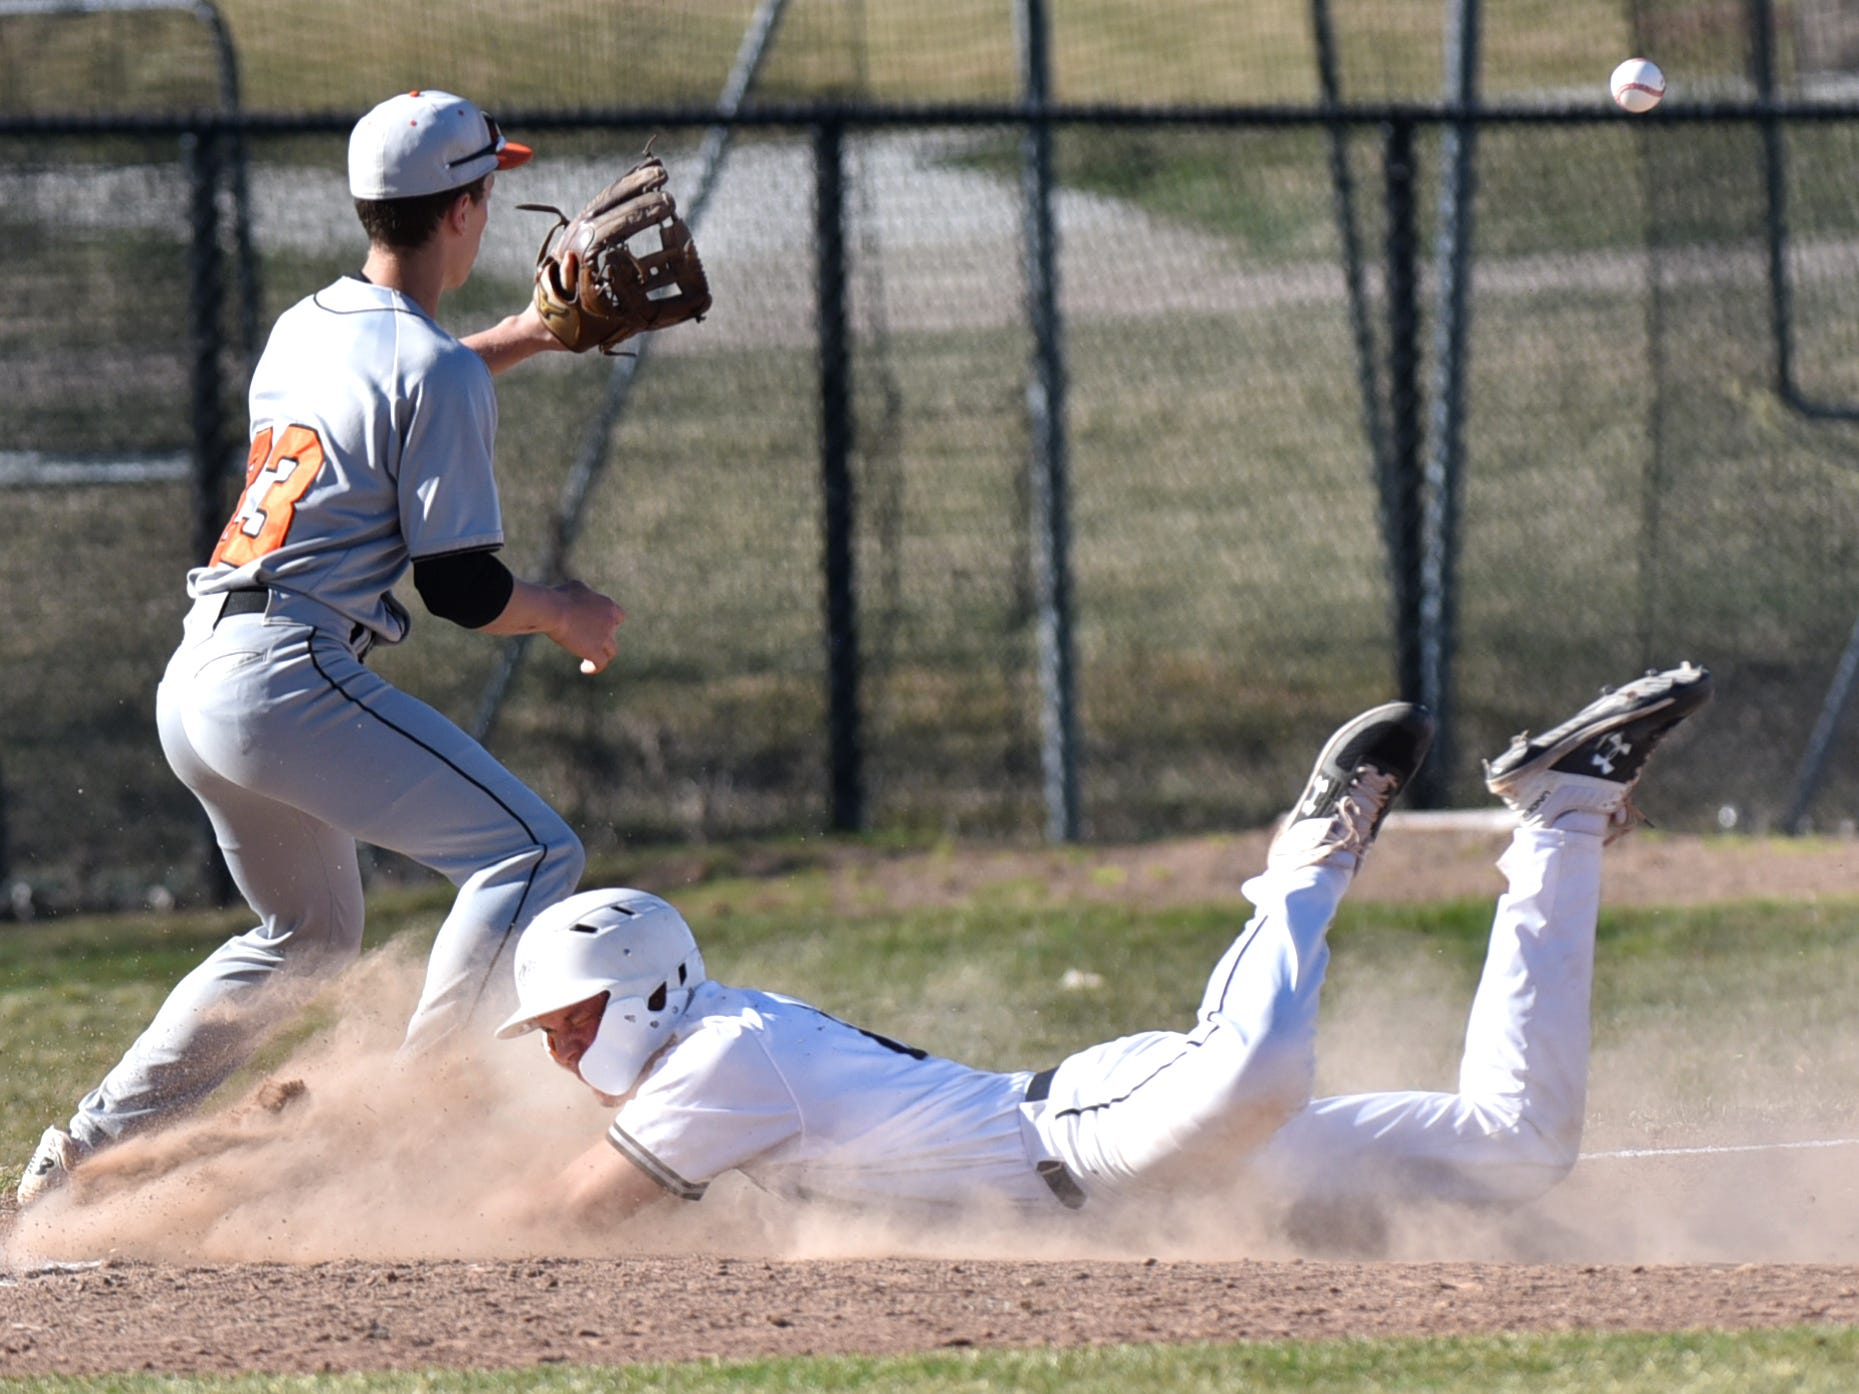 Wildcat Kai St. Germaine slides into third ahead of tag by Mustang Kameron Unger.